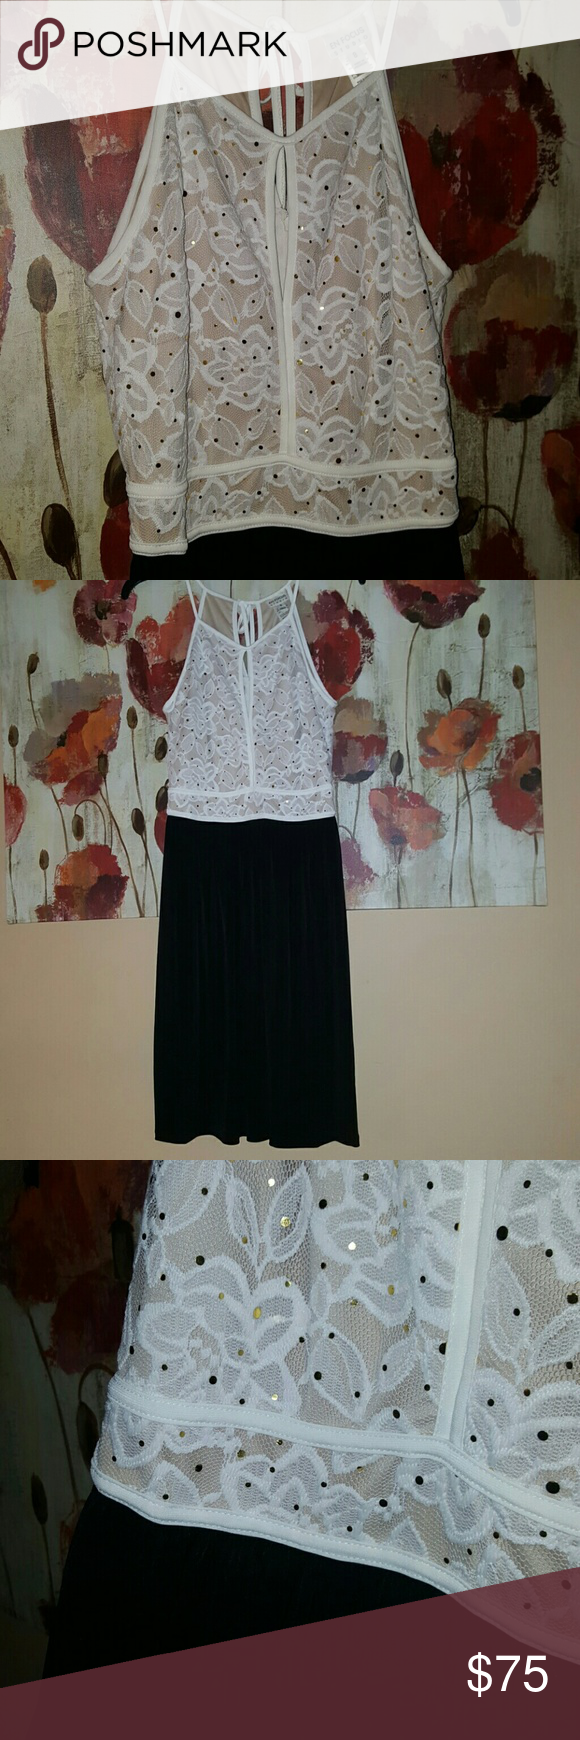 SALE TODAY ONLY! BLACK/BEIGE LACE DRESS Beautiful! Black /beige lace dress with some added sparkles for detail on the lace upper half of dress. Dress has a slight opening in front for exposure and also in the back, making this dress extra nice. Lower slip is soft and silky plain black color. NWOT. En Focus  Dresses Midi